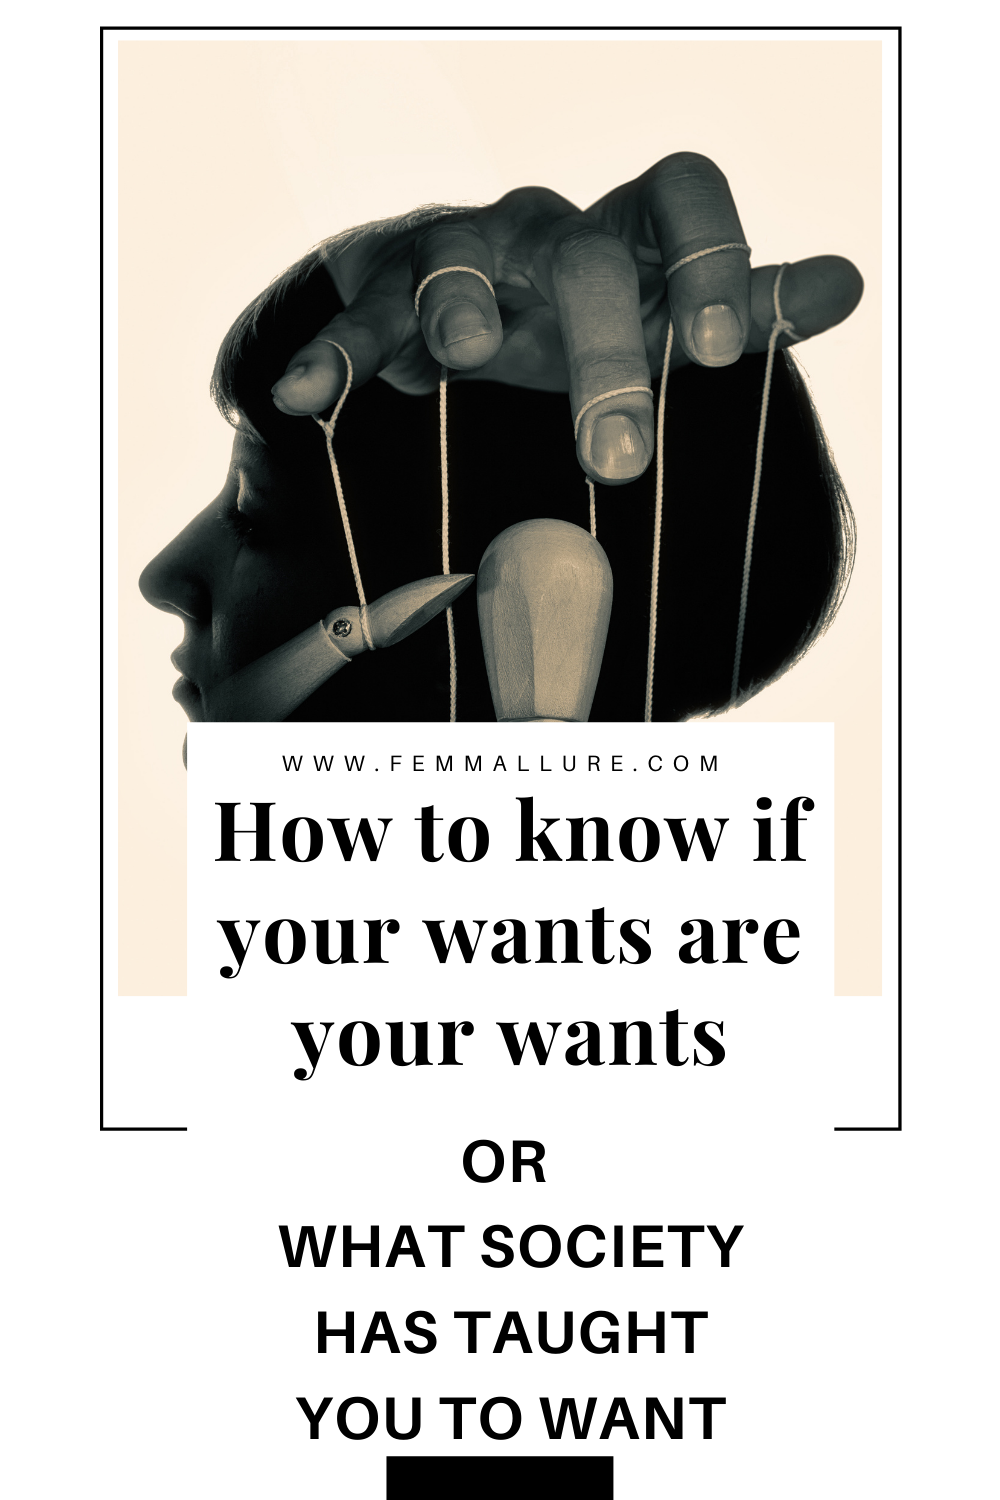 how to know if your wants are your wants_or what society has taught you to want